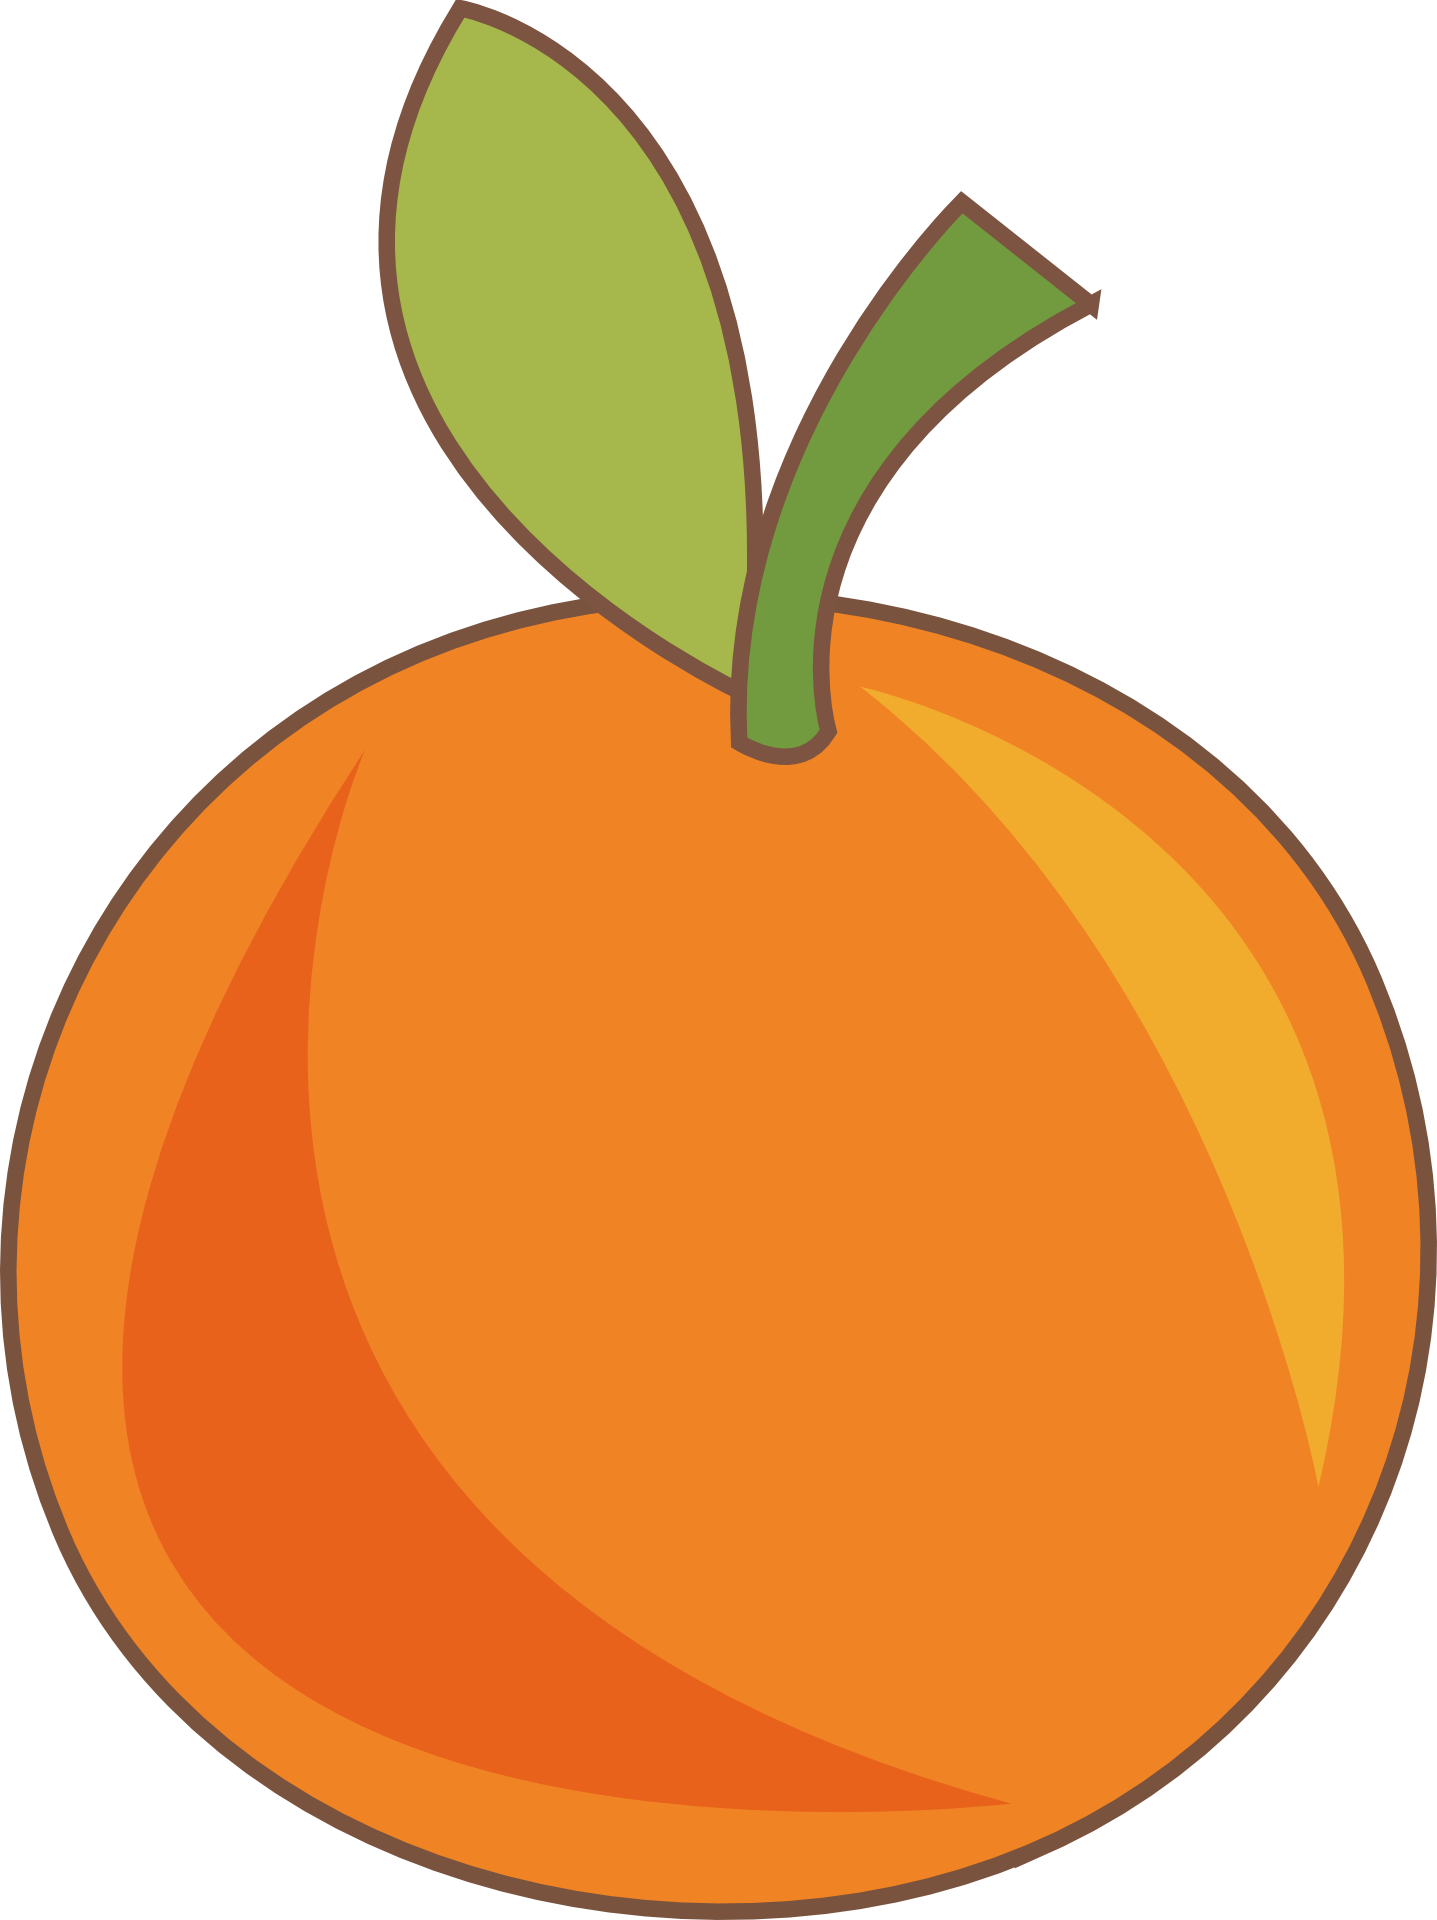 vector transparent Orange Fruit Drawing at GetDrawings